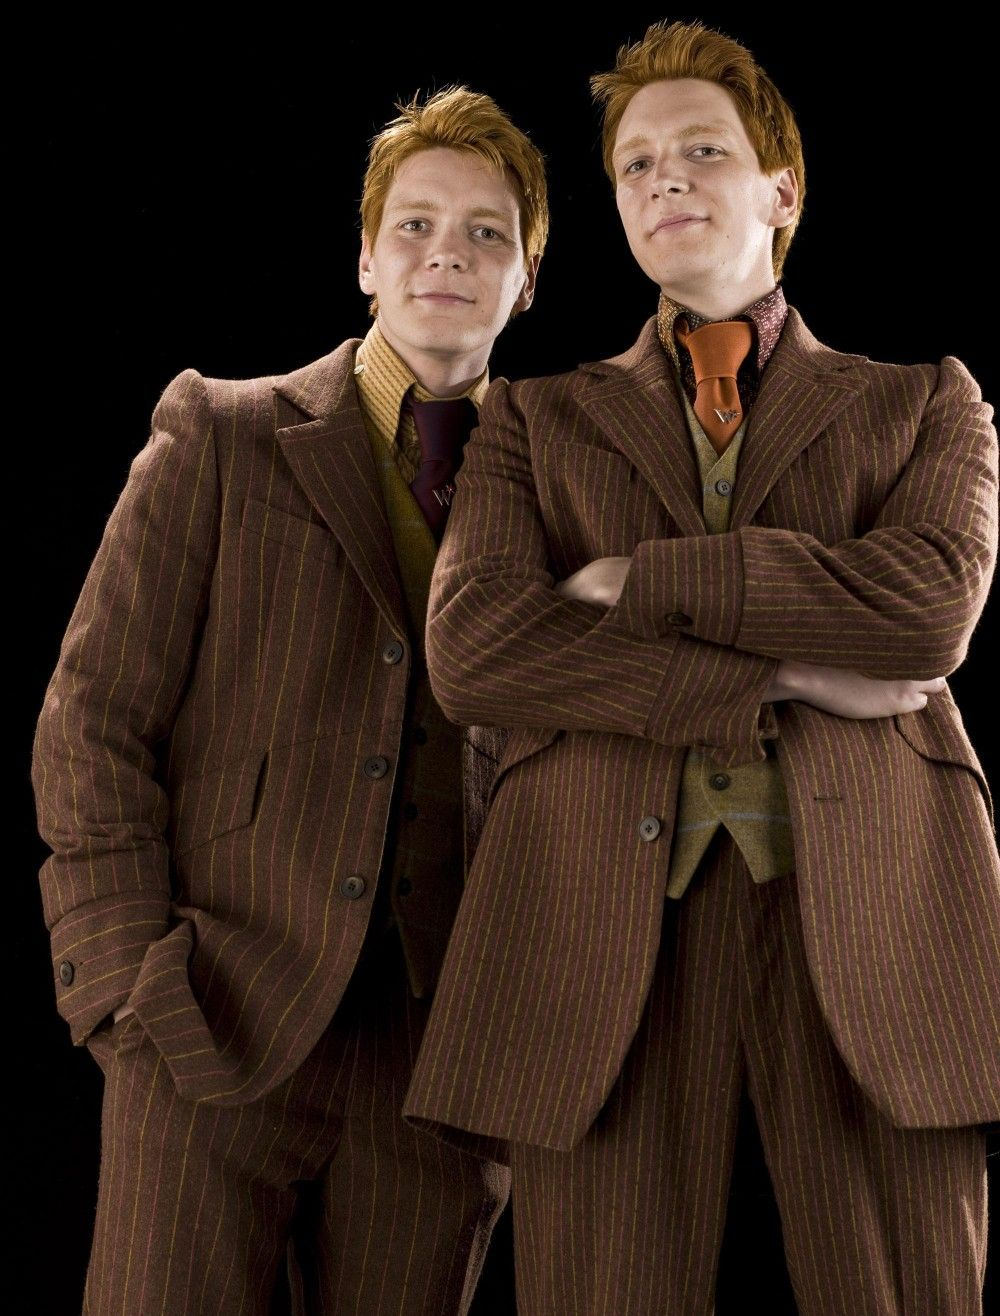 Happy Birthday Harry Potter Twins George Weasley Fred And George Weasley